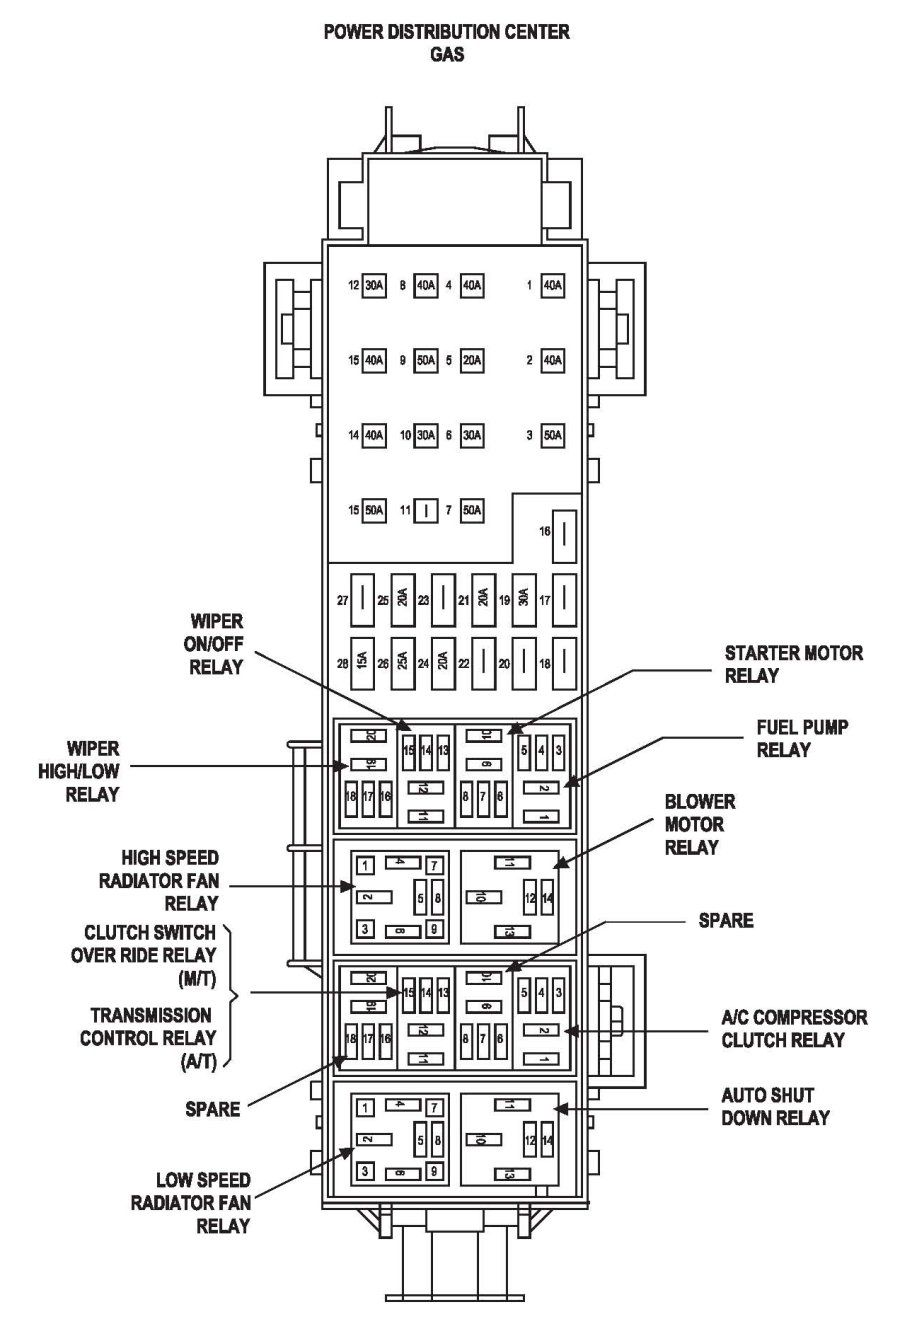 1999 porsche 996 fuse box diagram [ 900 x 1336 Pixel ]